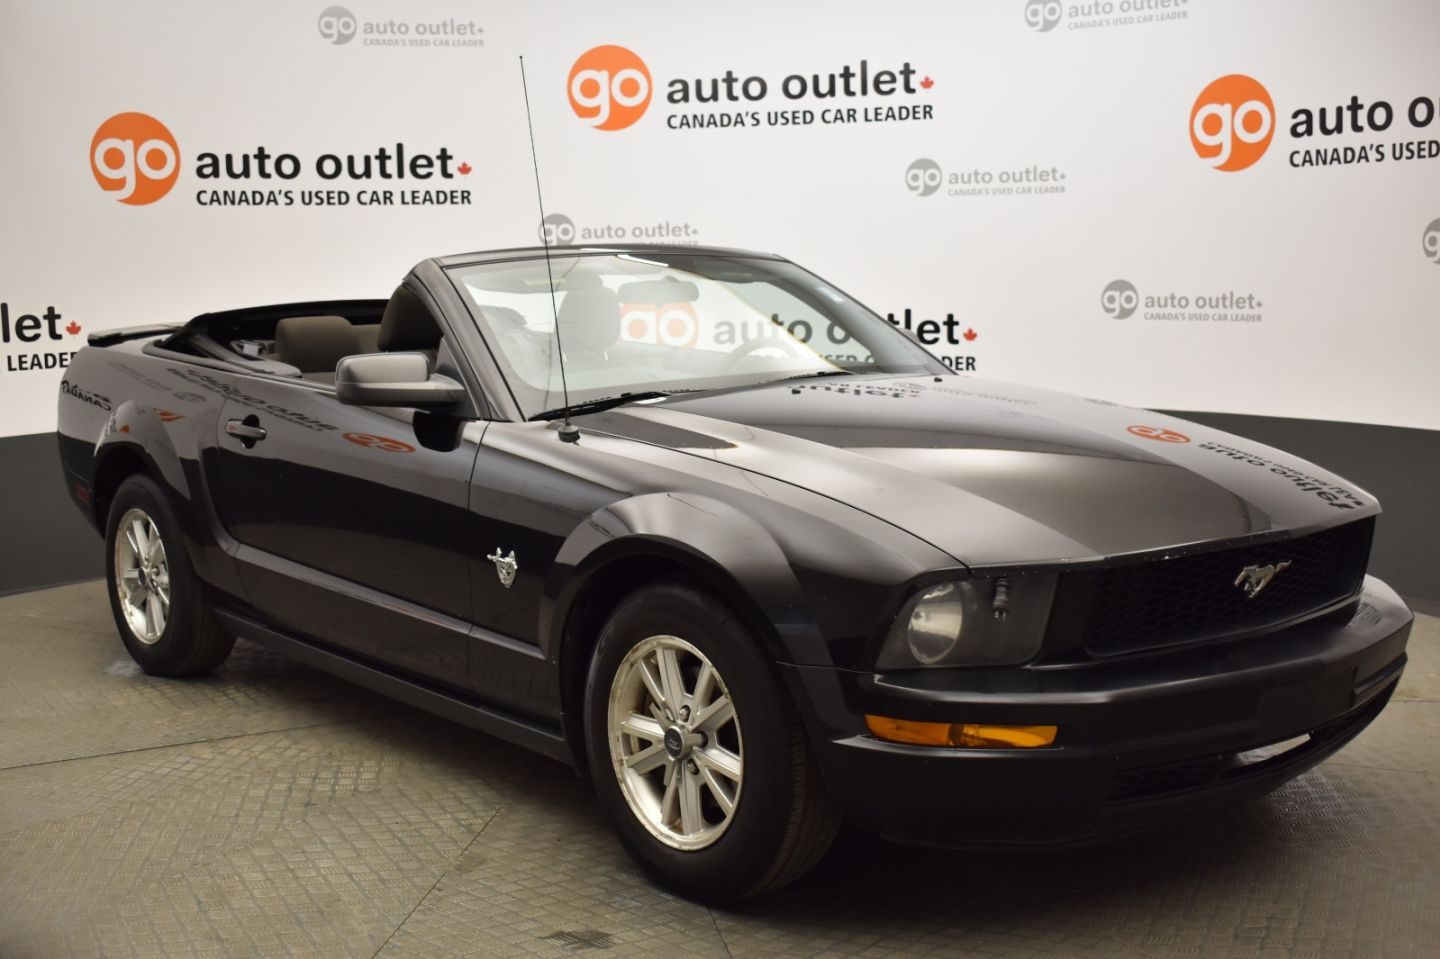 2009 Ford Mustang  for sale in Leduc, Alberta